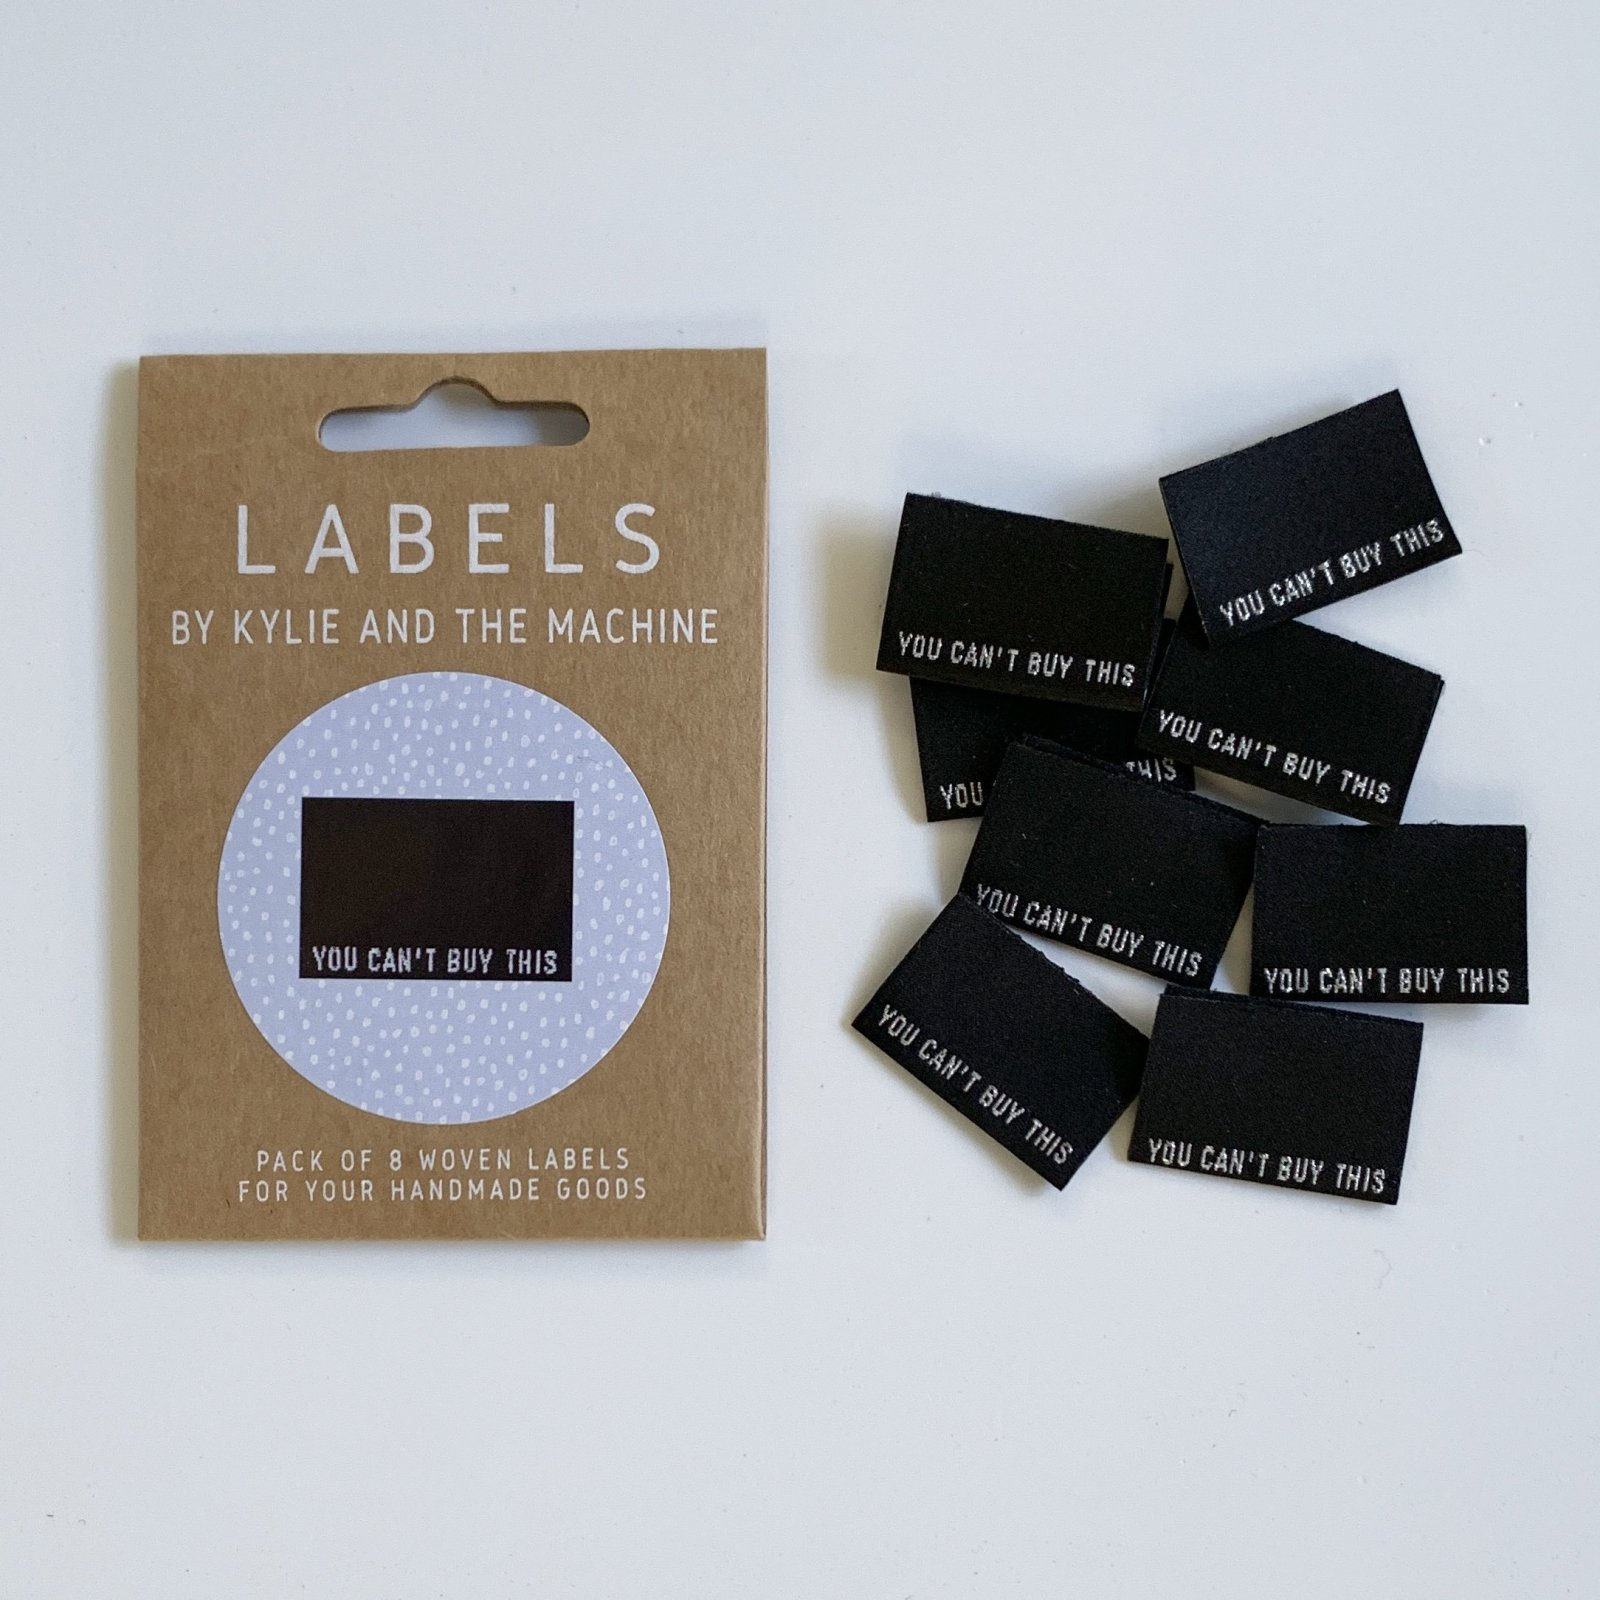 YOU CAN'T BUY THIS Woven Sewing Labels by Kylie and the Machine